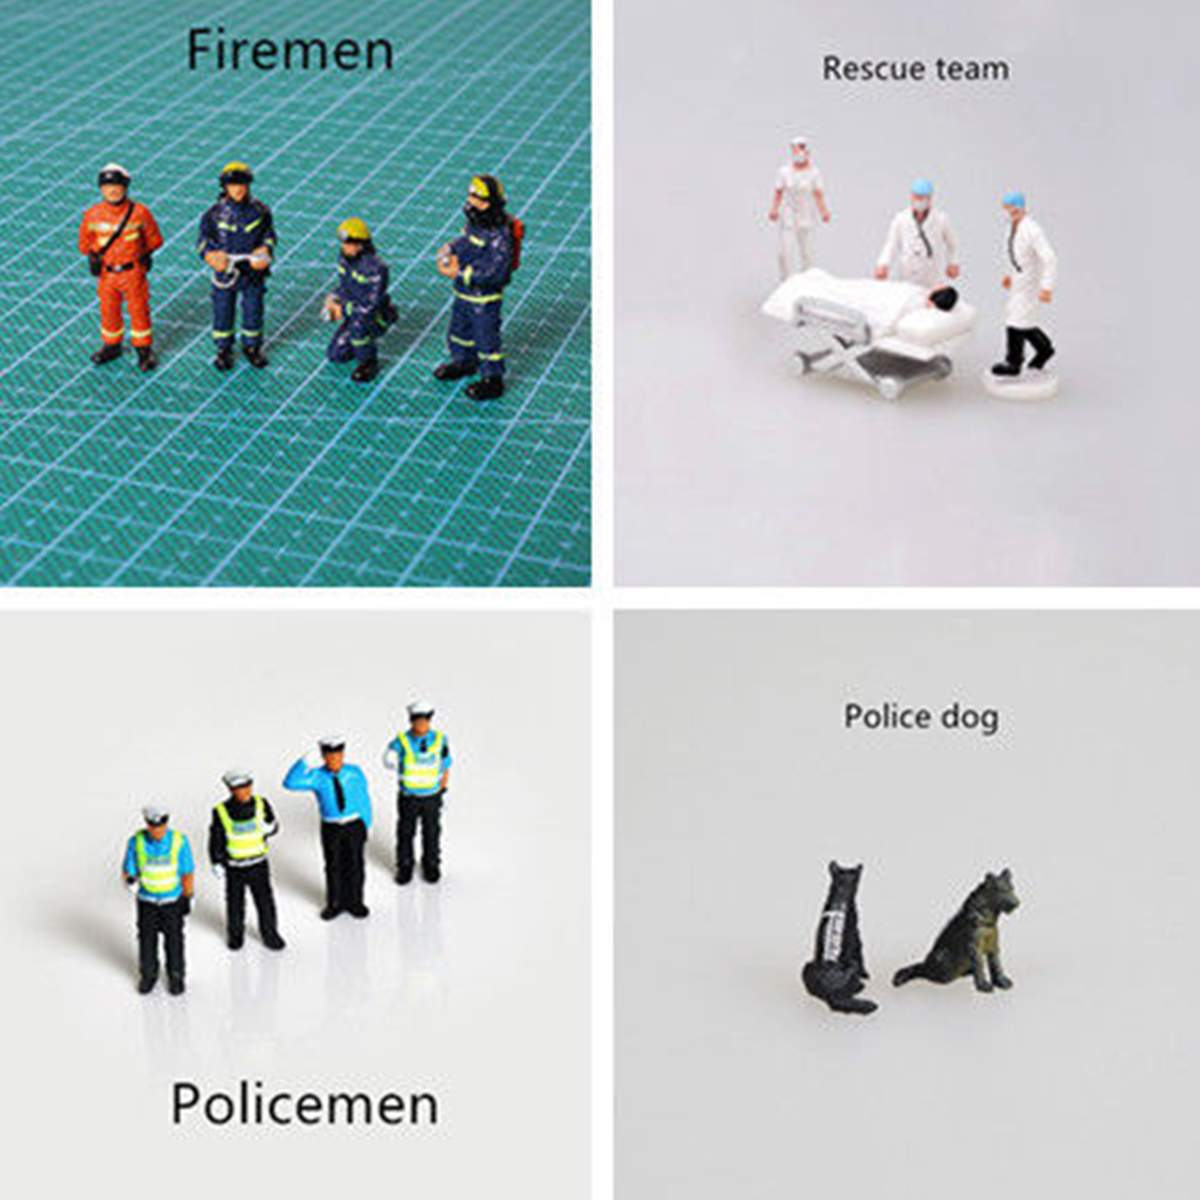 4Pcs/set Race Medal 1:64 Mini Policemen Firemen Rescue Team Dog Figure Model Set For Children Toy Group